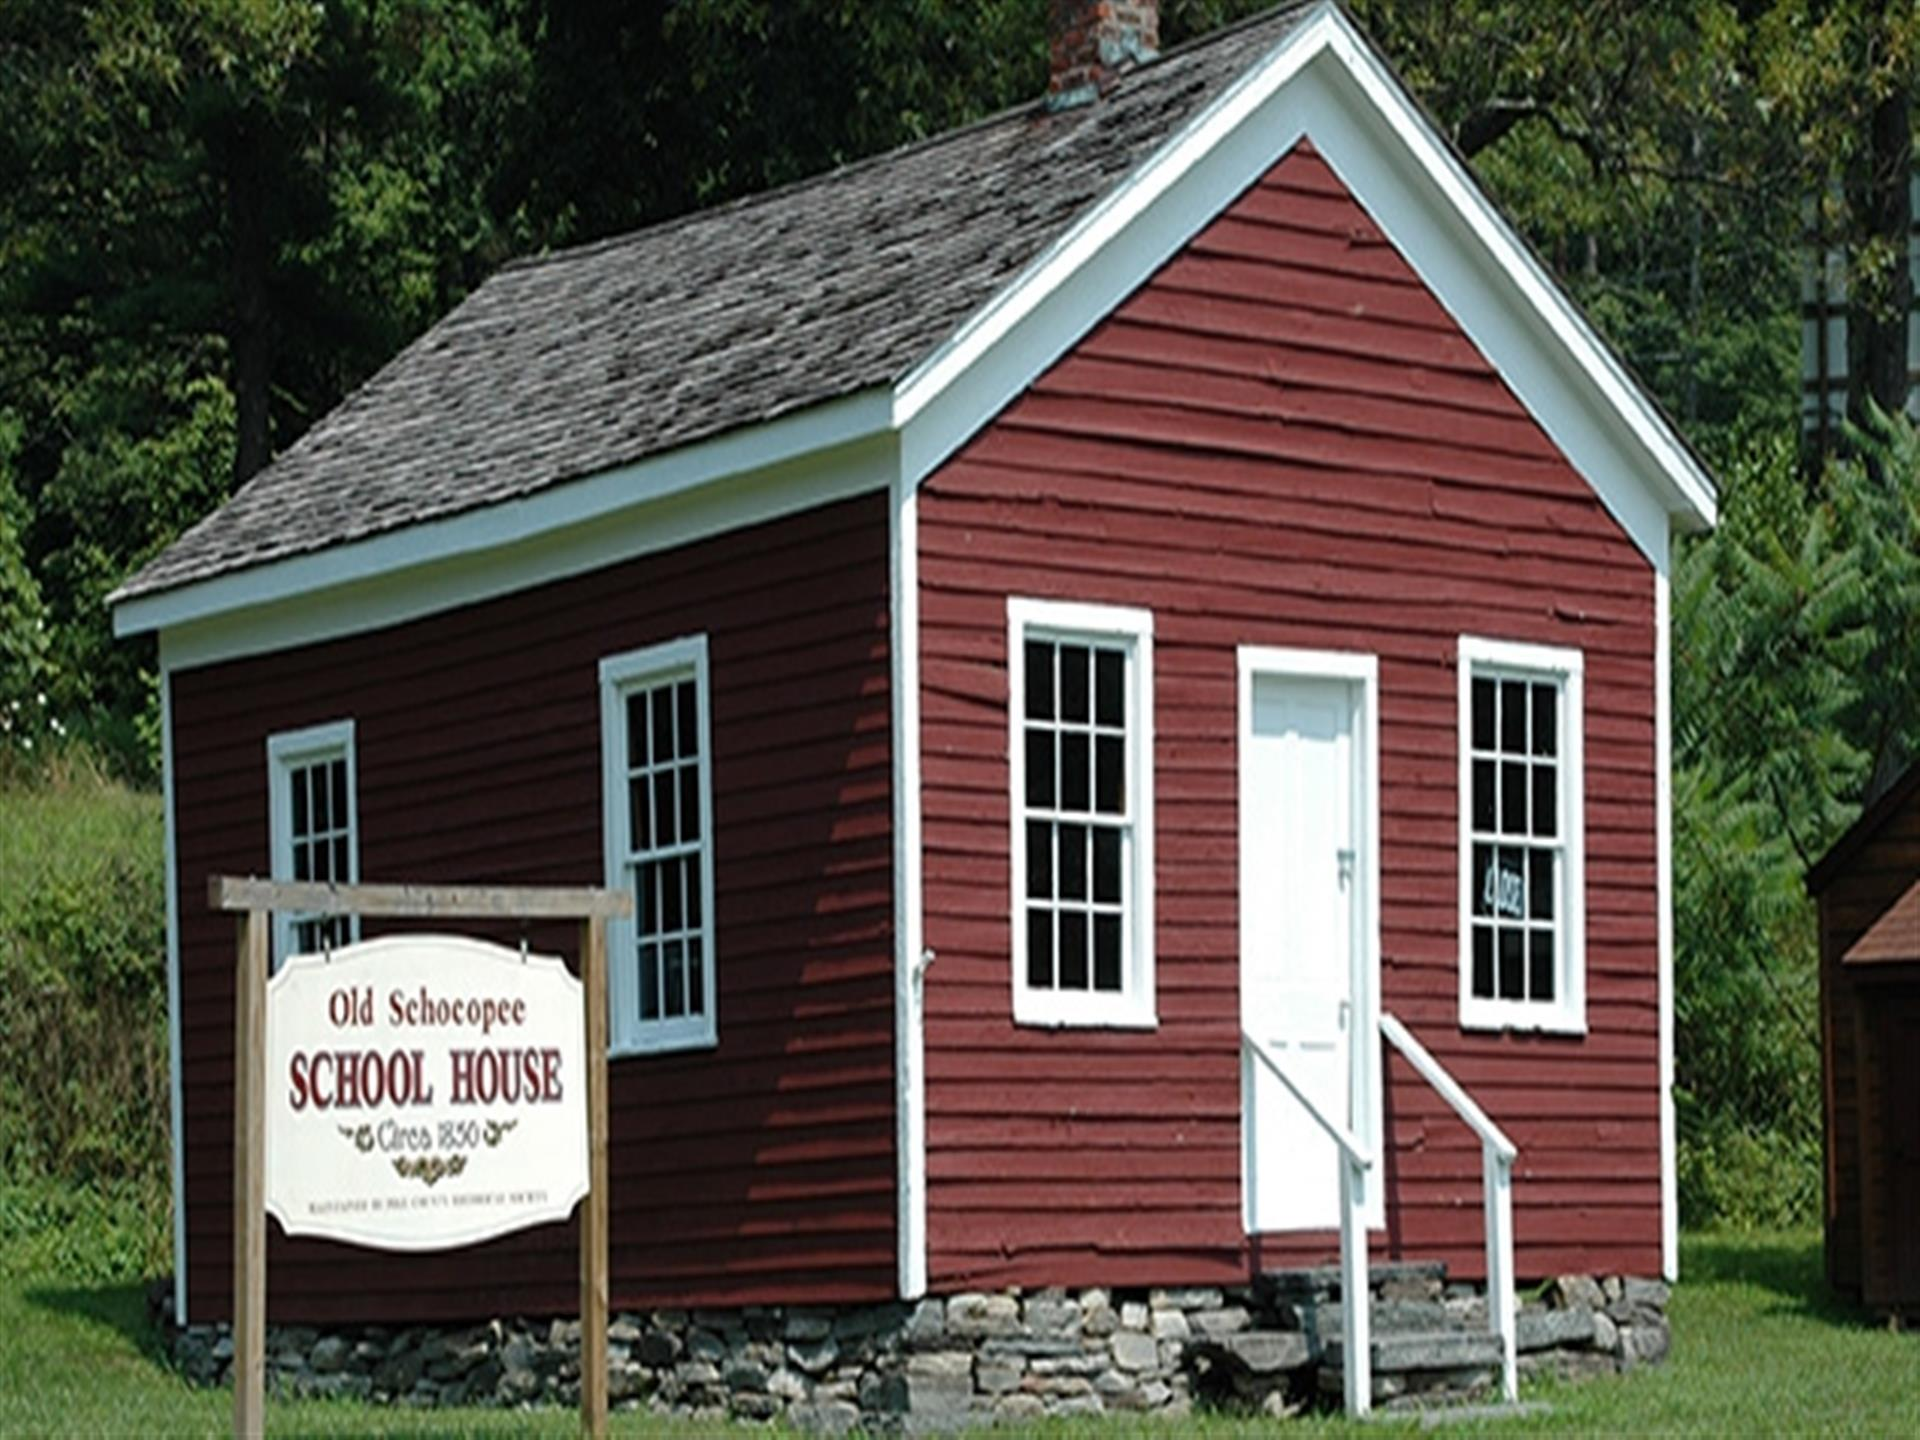 Old Schoepee School House. Since 1850. Red old school building with a sign out front.